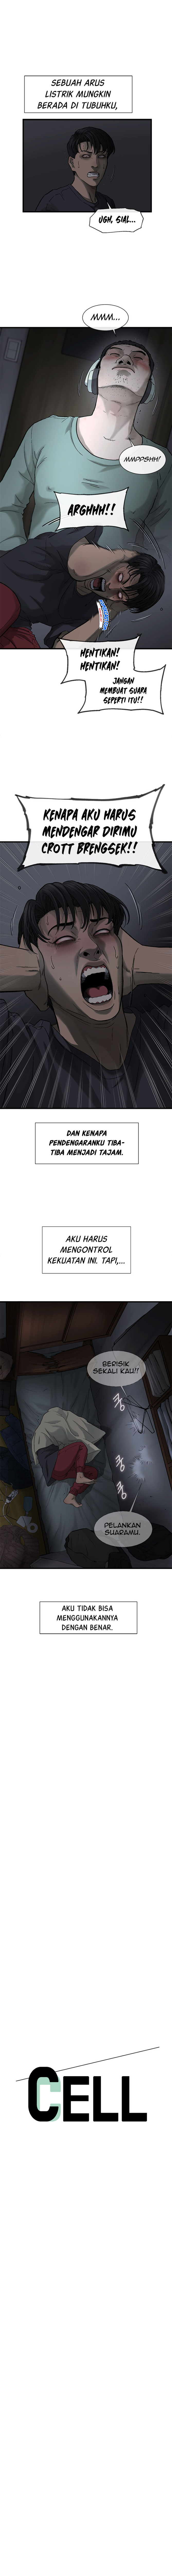 Cell Chapter 6